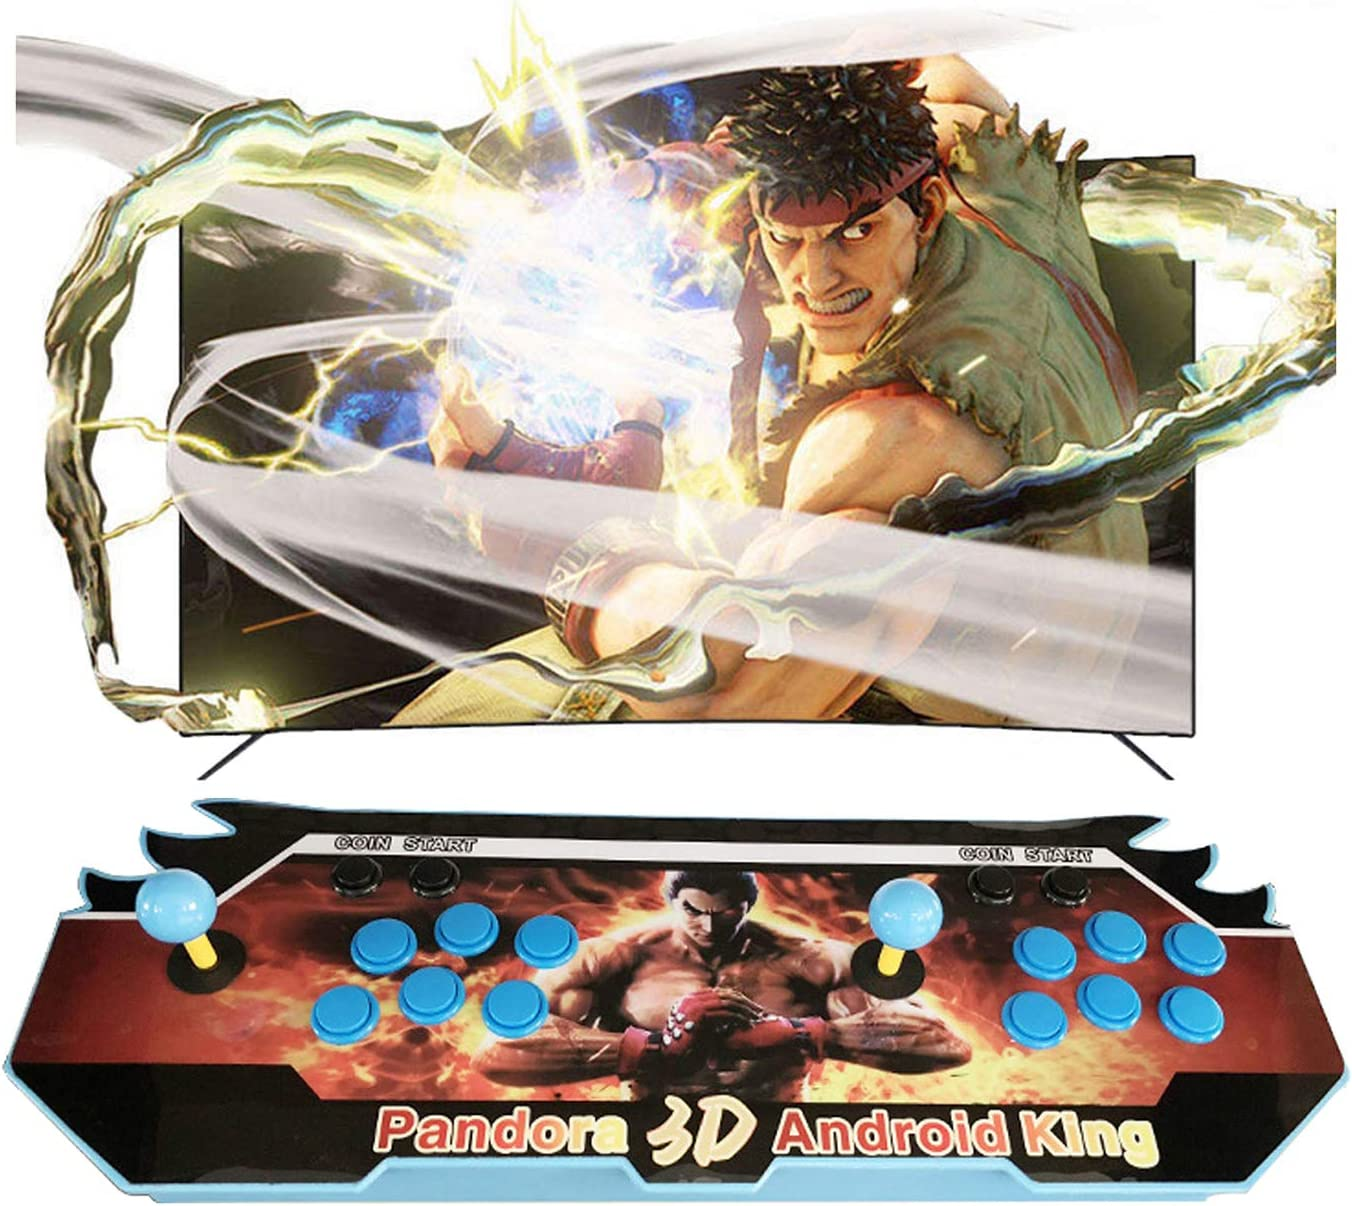 OFFicial TANCEQI 4500 Games in 1 Arcade Box Console 18S Popular brand Game Cl Pandora's